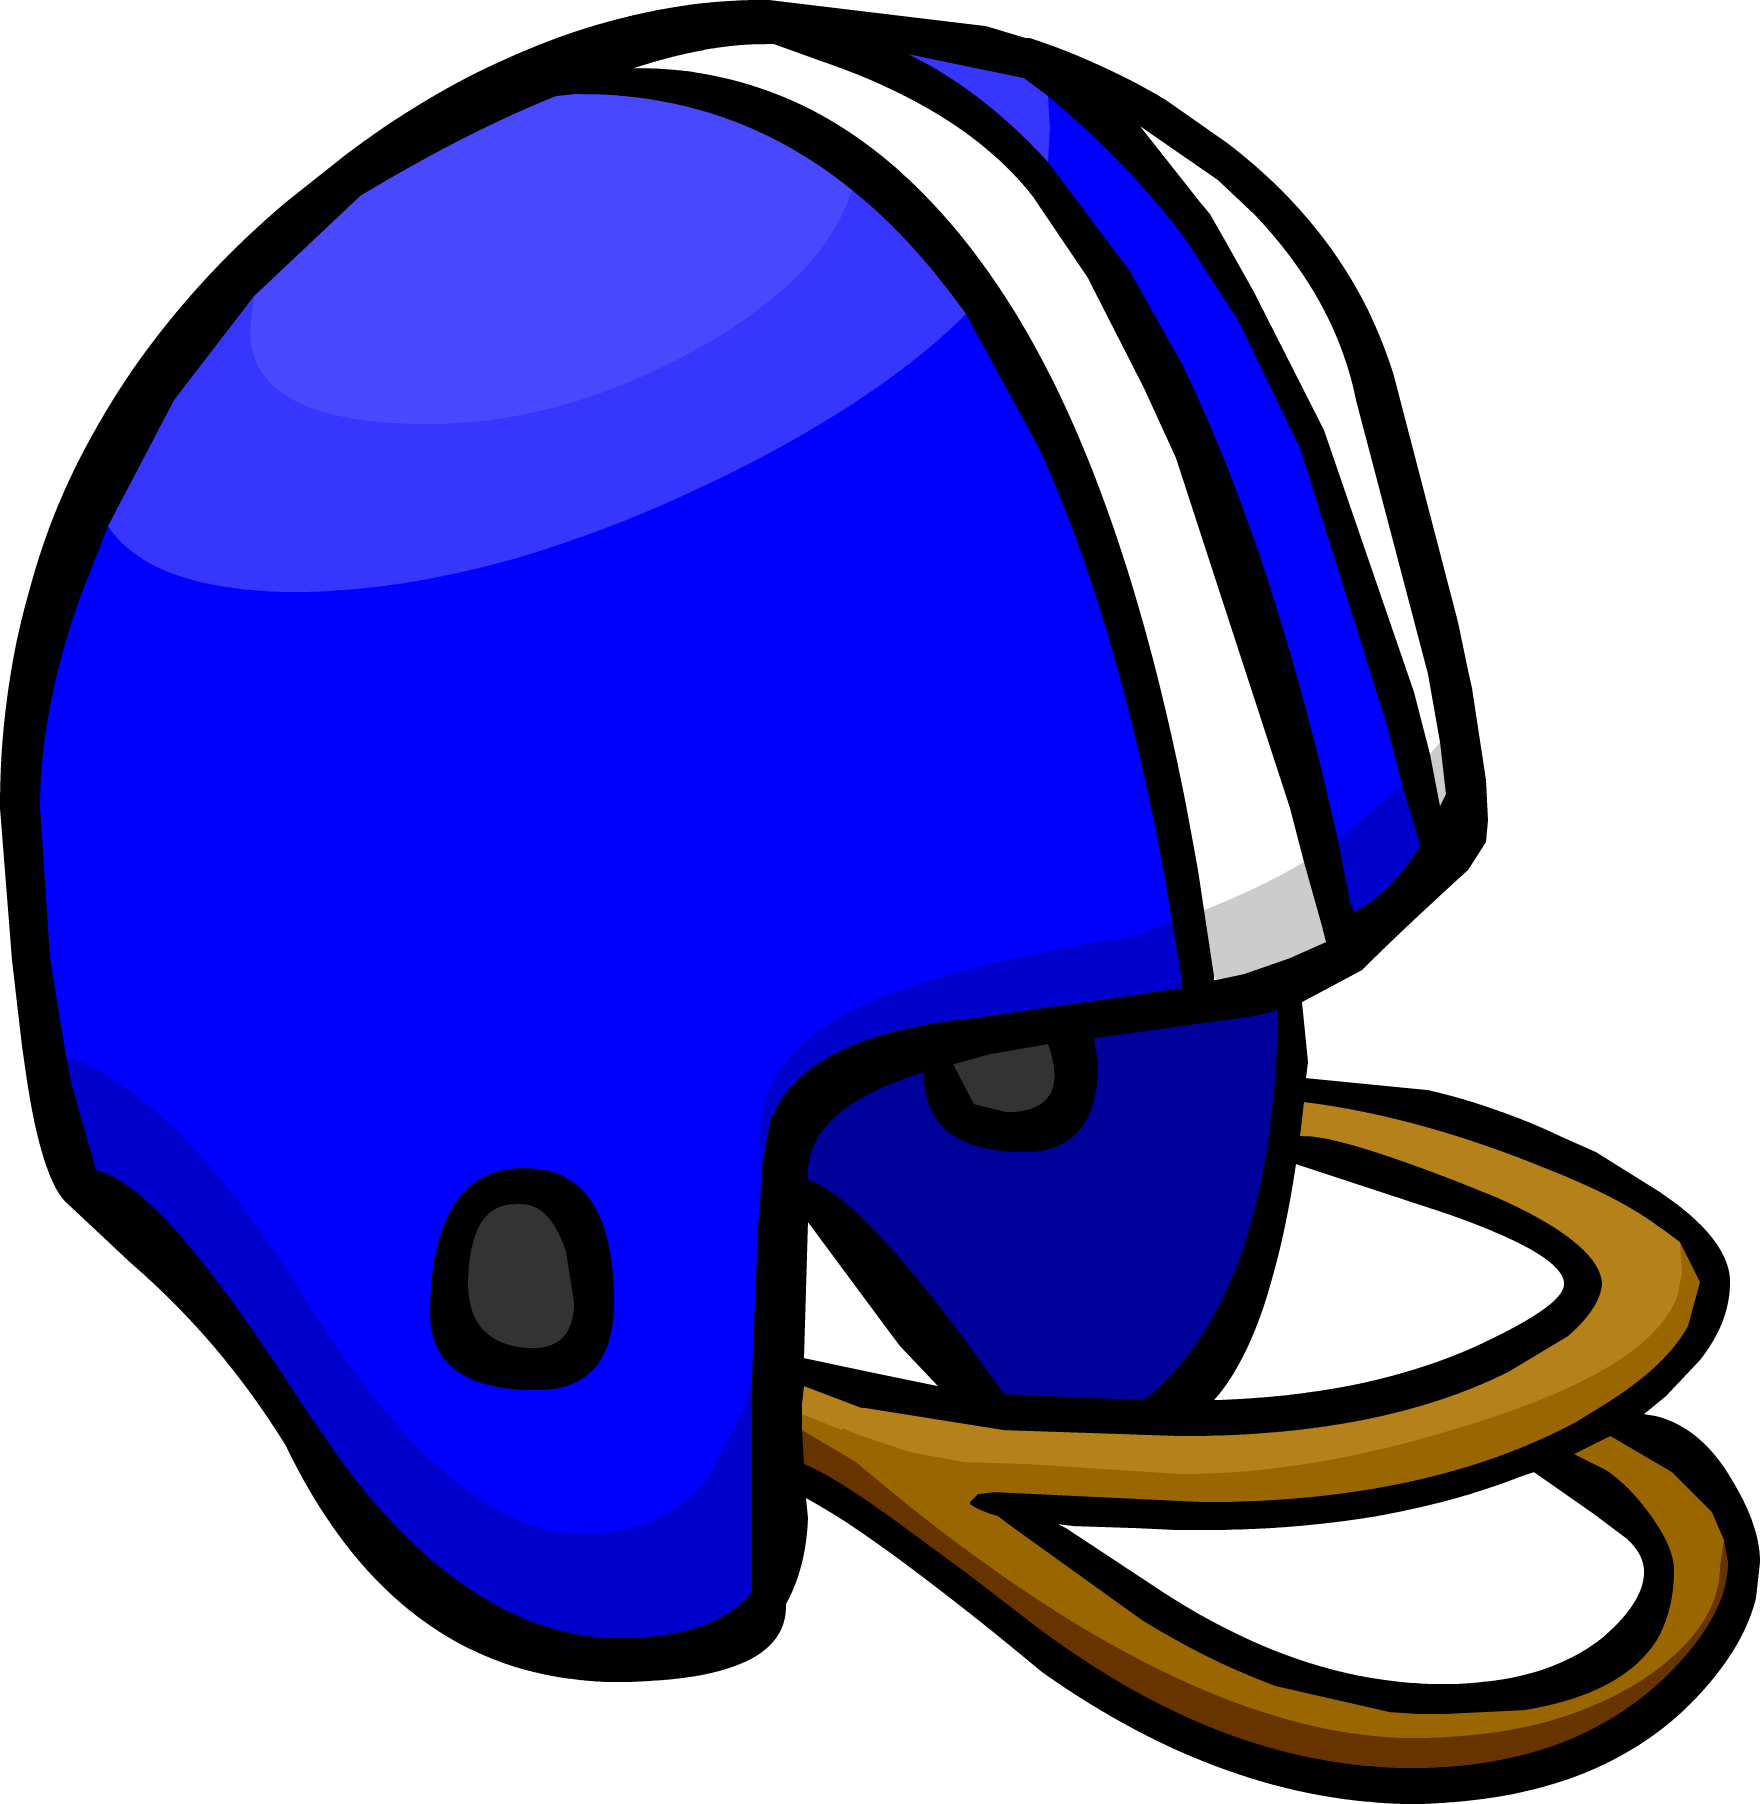 1760x1804 Blue Football Helmet Club Penguin Wiki Fandom Powered By Wikia